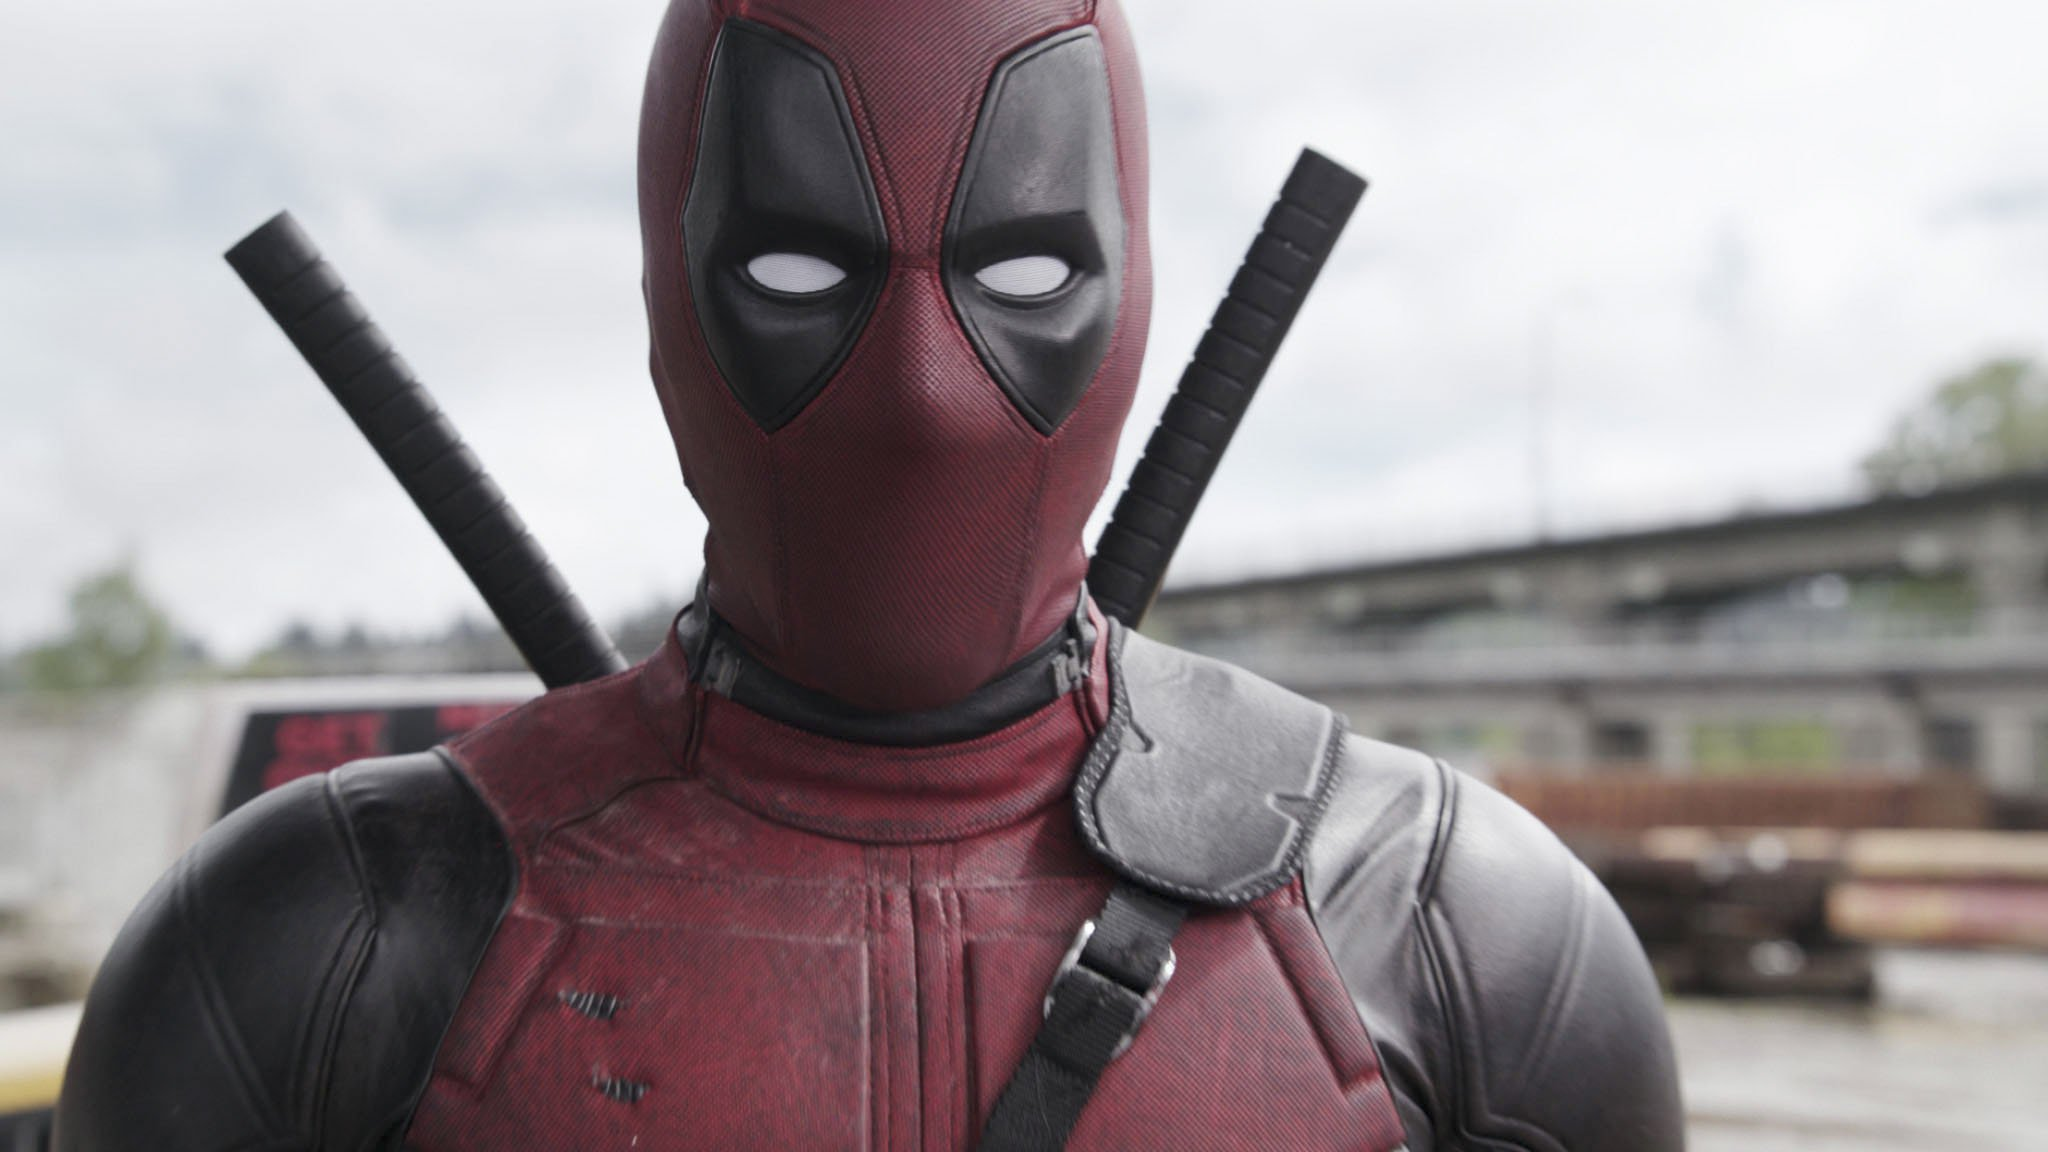 Deadpool 2 fans speculate over 'secret cameo' star as trailer for Ryan Reynolds sequel drops